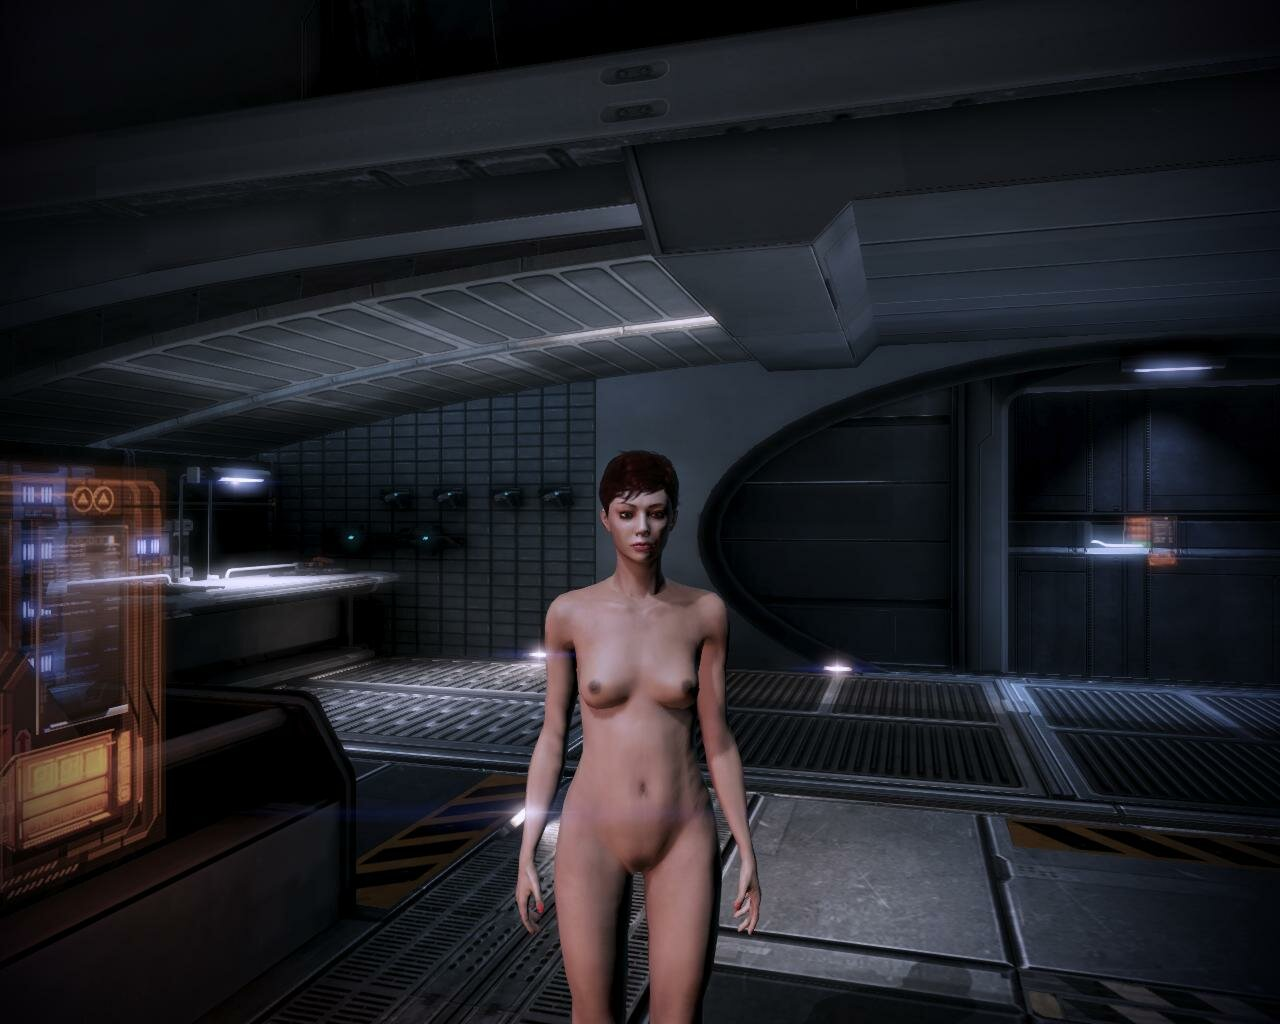 Assissn's creed nude mod nude picture